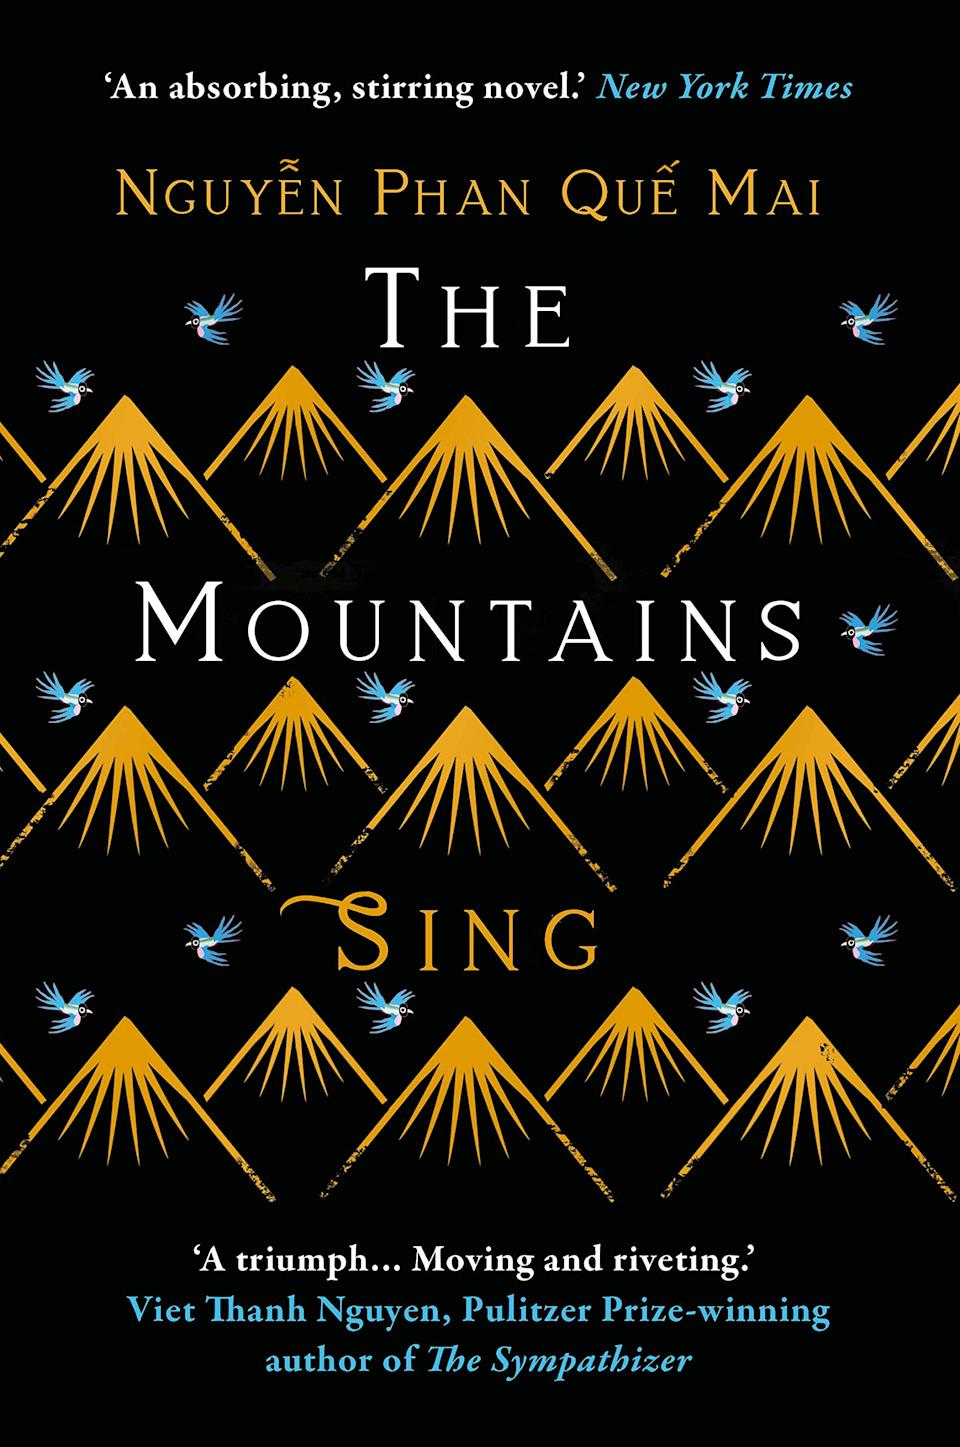 """<strong>Jess Commons, Lifestyle Director</strong><br><br><strong>Book:</strong> <em>The Mountains Sing</em> by Nguyễn Phan Quế Mai<br><br><strong>Why is it your August read?</strong> I'm trying to read more historical fiction from other countries at the moment and the first English language novel from Vietnamese poet Nguyễn Phan Quế Mai, which came out this spring, has given me a devastating lesson in Vietnam's scarred history. Narrated by Huang, a teenage girl living in Hanoi at the end of the Vietnam War, and her grandmother Diệu Lan, who is telling Huang about her life, the historical events of the 20th century provide a terrifying backdrop for their tales which unfold side by side. From the French and Japanese occupations to the Indochina wars, The Great Hunger, land reform and the Vietnam War, it's a story of resilience, determination, family and hope in a country blighted by pain.<br><br><strong>Nguyễn Phan Quế Mai</strong> The Mountains Sing, $, available at <a href=""""https://amzn.to/2P8Ph6m"""" rel=""""nofollow noopener"""" target=""""_blank"""" data-ylk=""""slk:Amazon"""" class=""""link rapid-noclick-resp"""">Amazon</a>"""